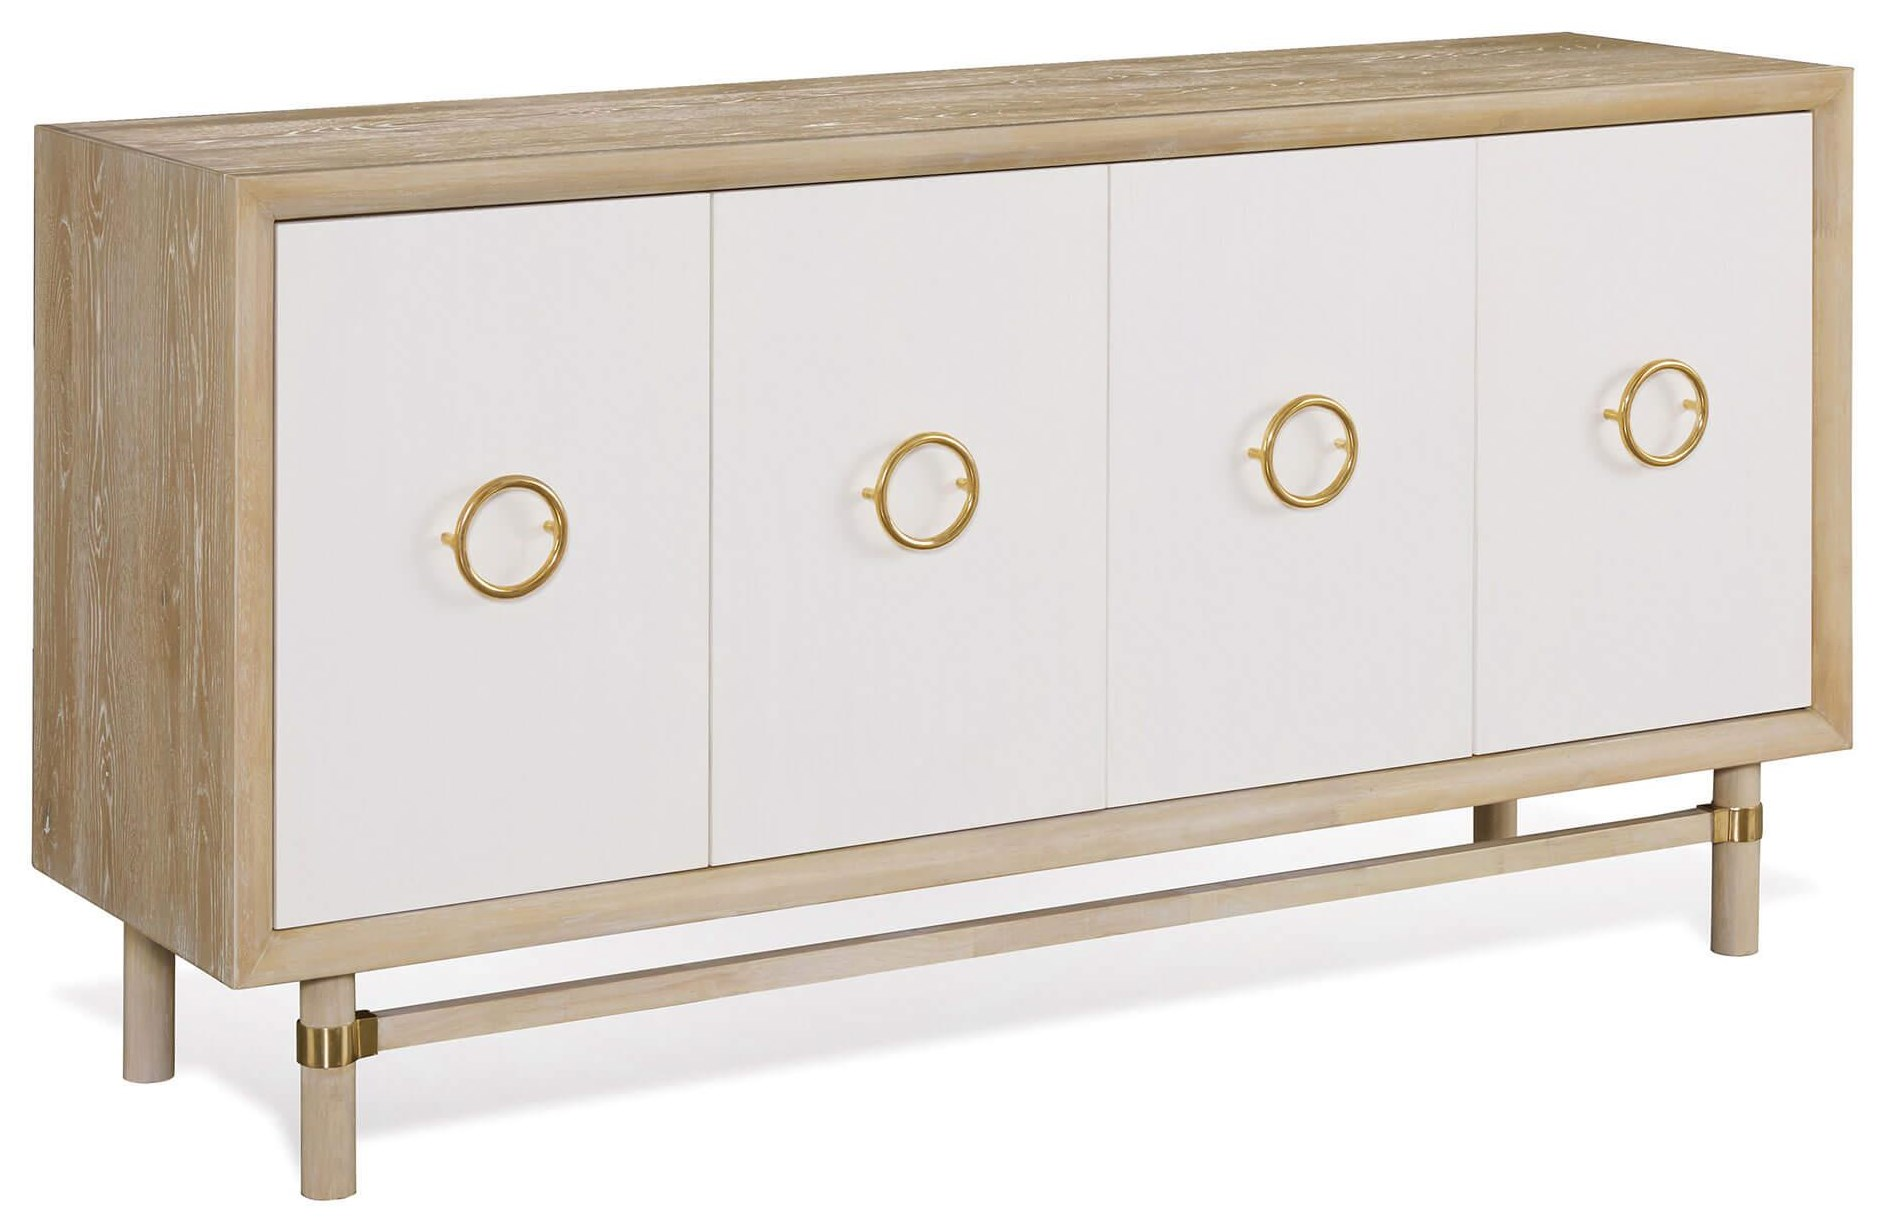 Sarah Richardson Shore 4 Dr Credenza - Shore by Palliser at Stoney Creek Furniture